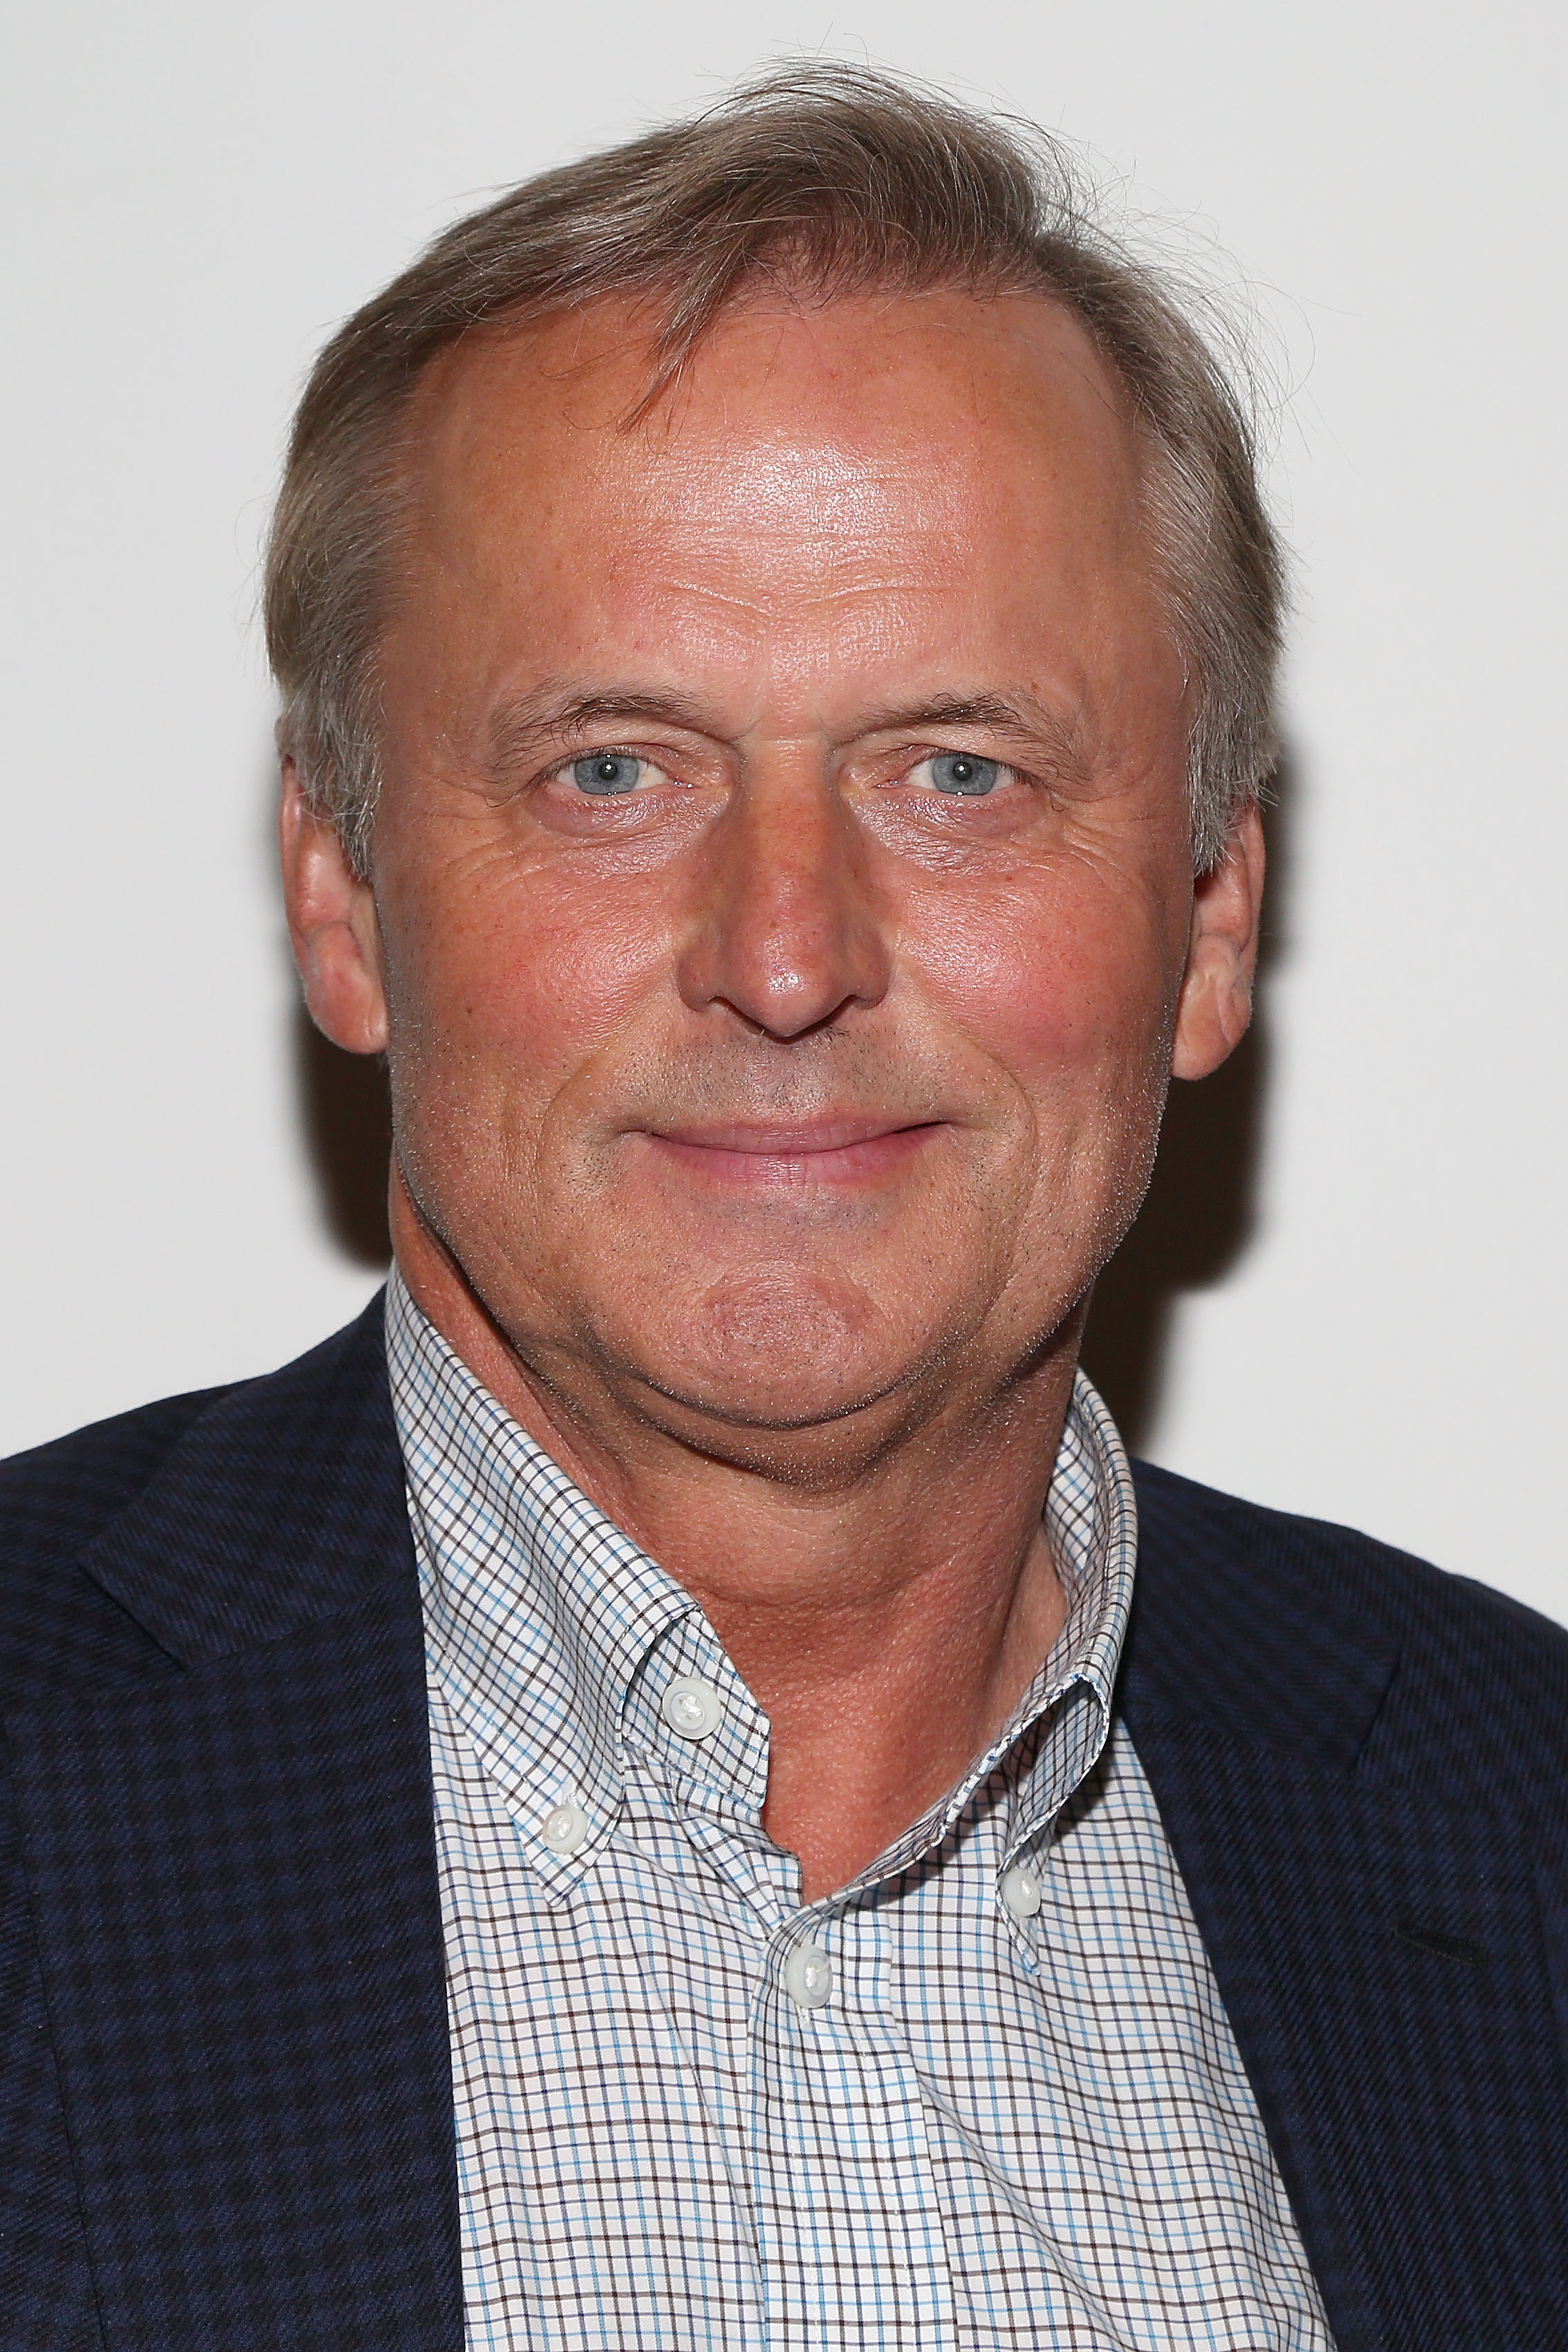 Author John Grisham attends the 2014 Bookexpo America at The Jacob K. Javits Convention Center on May 31, 2014 in New York City.